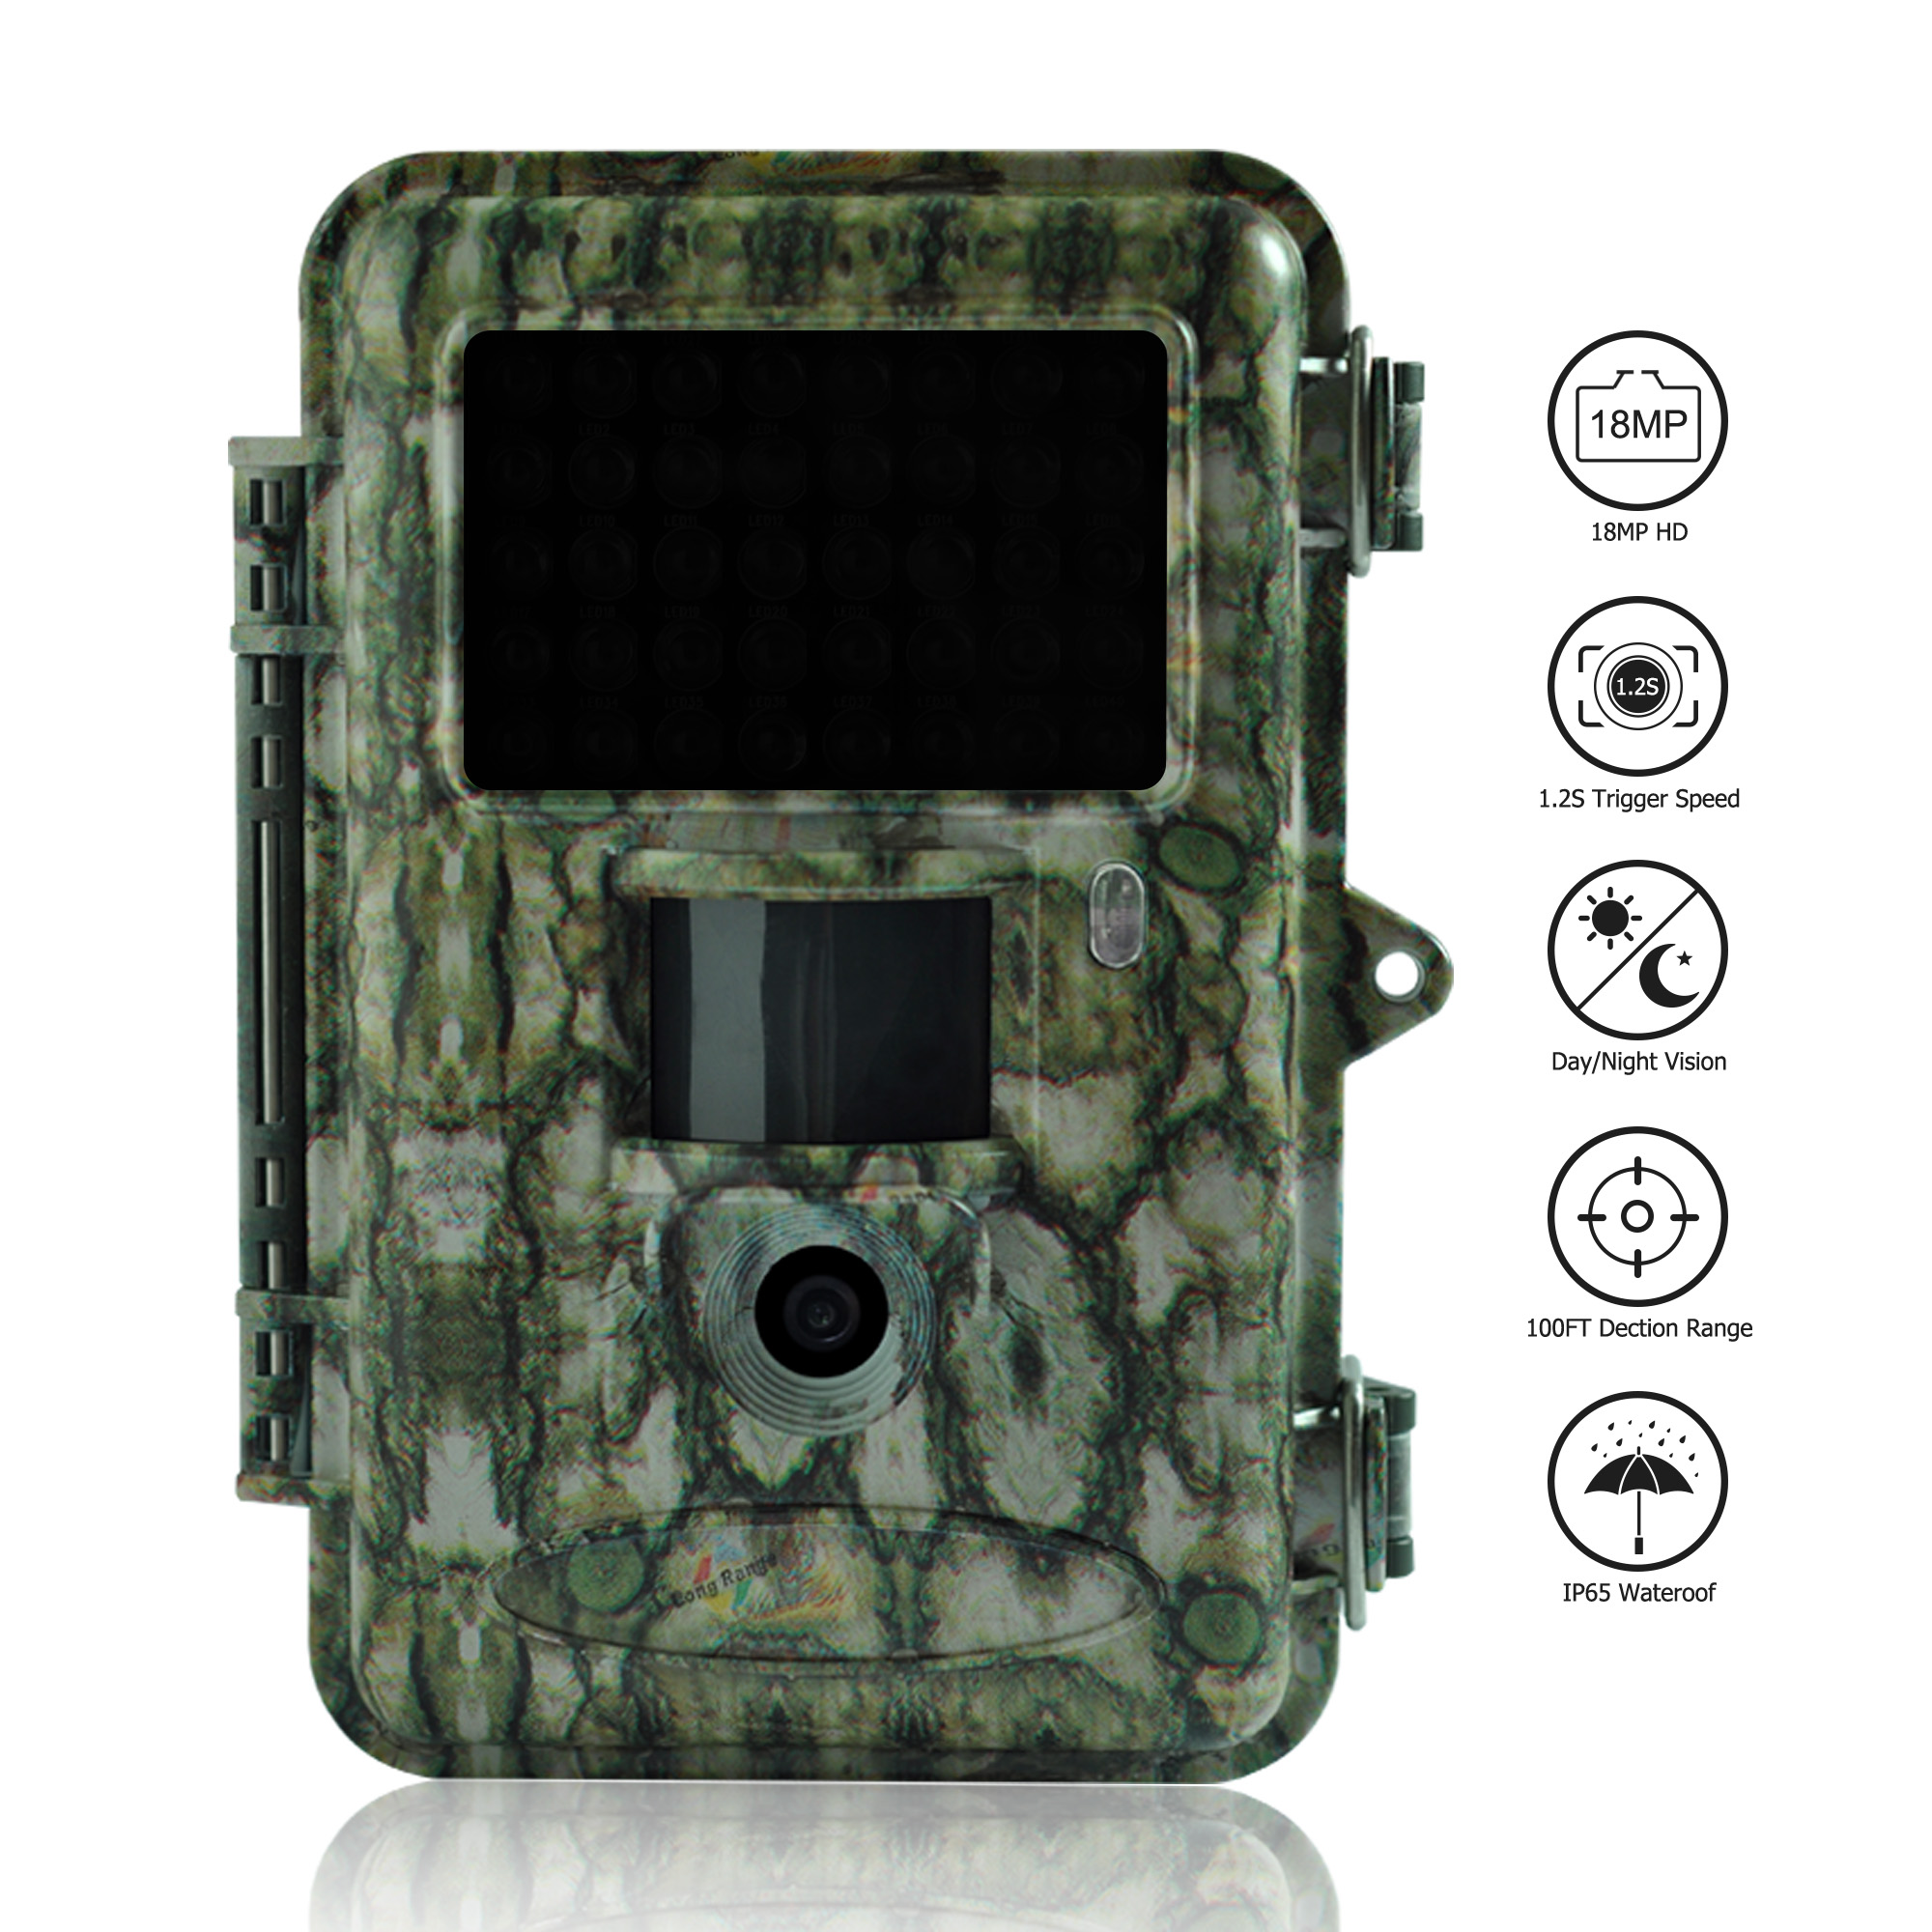 Bolyguard Hunting Trail Camera 18MP Outdoor Waterproof Wildlife 940nm IR LED for Night Vision surveillance camera fototrappola